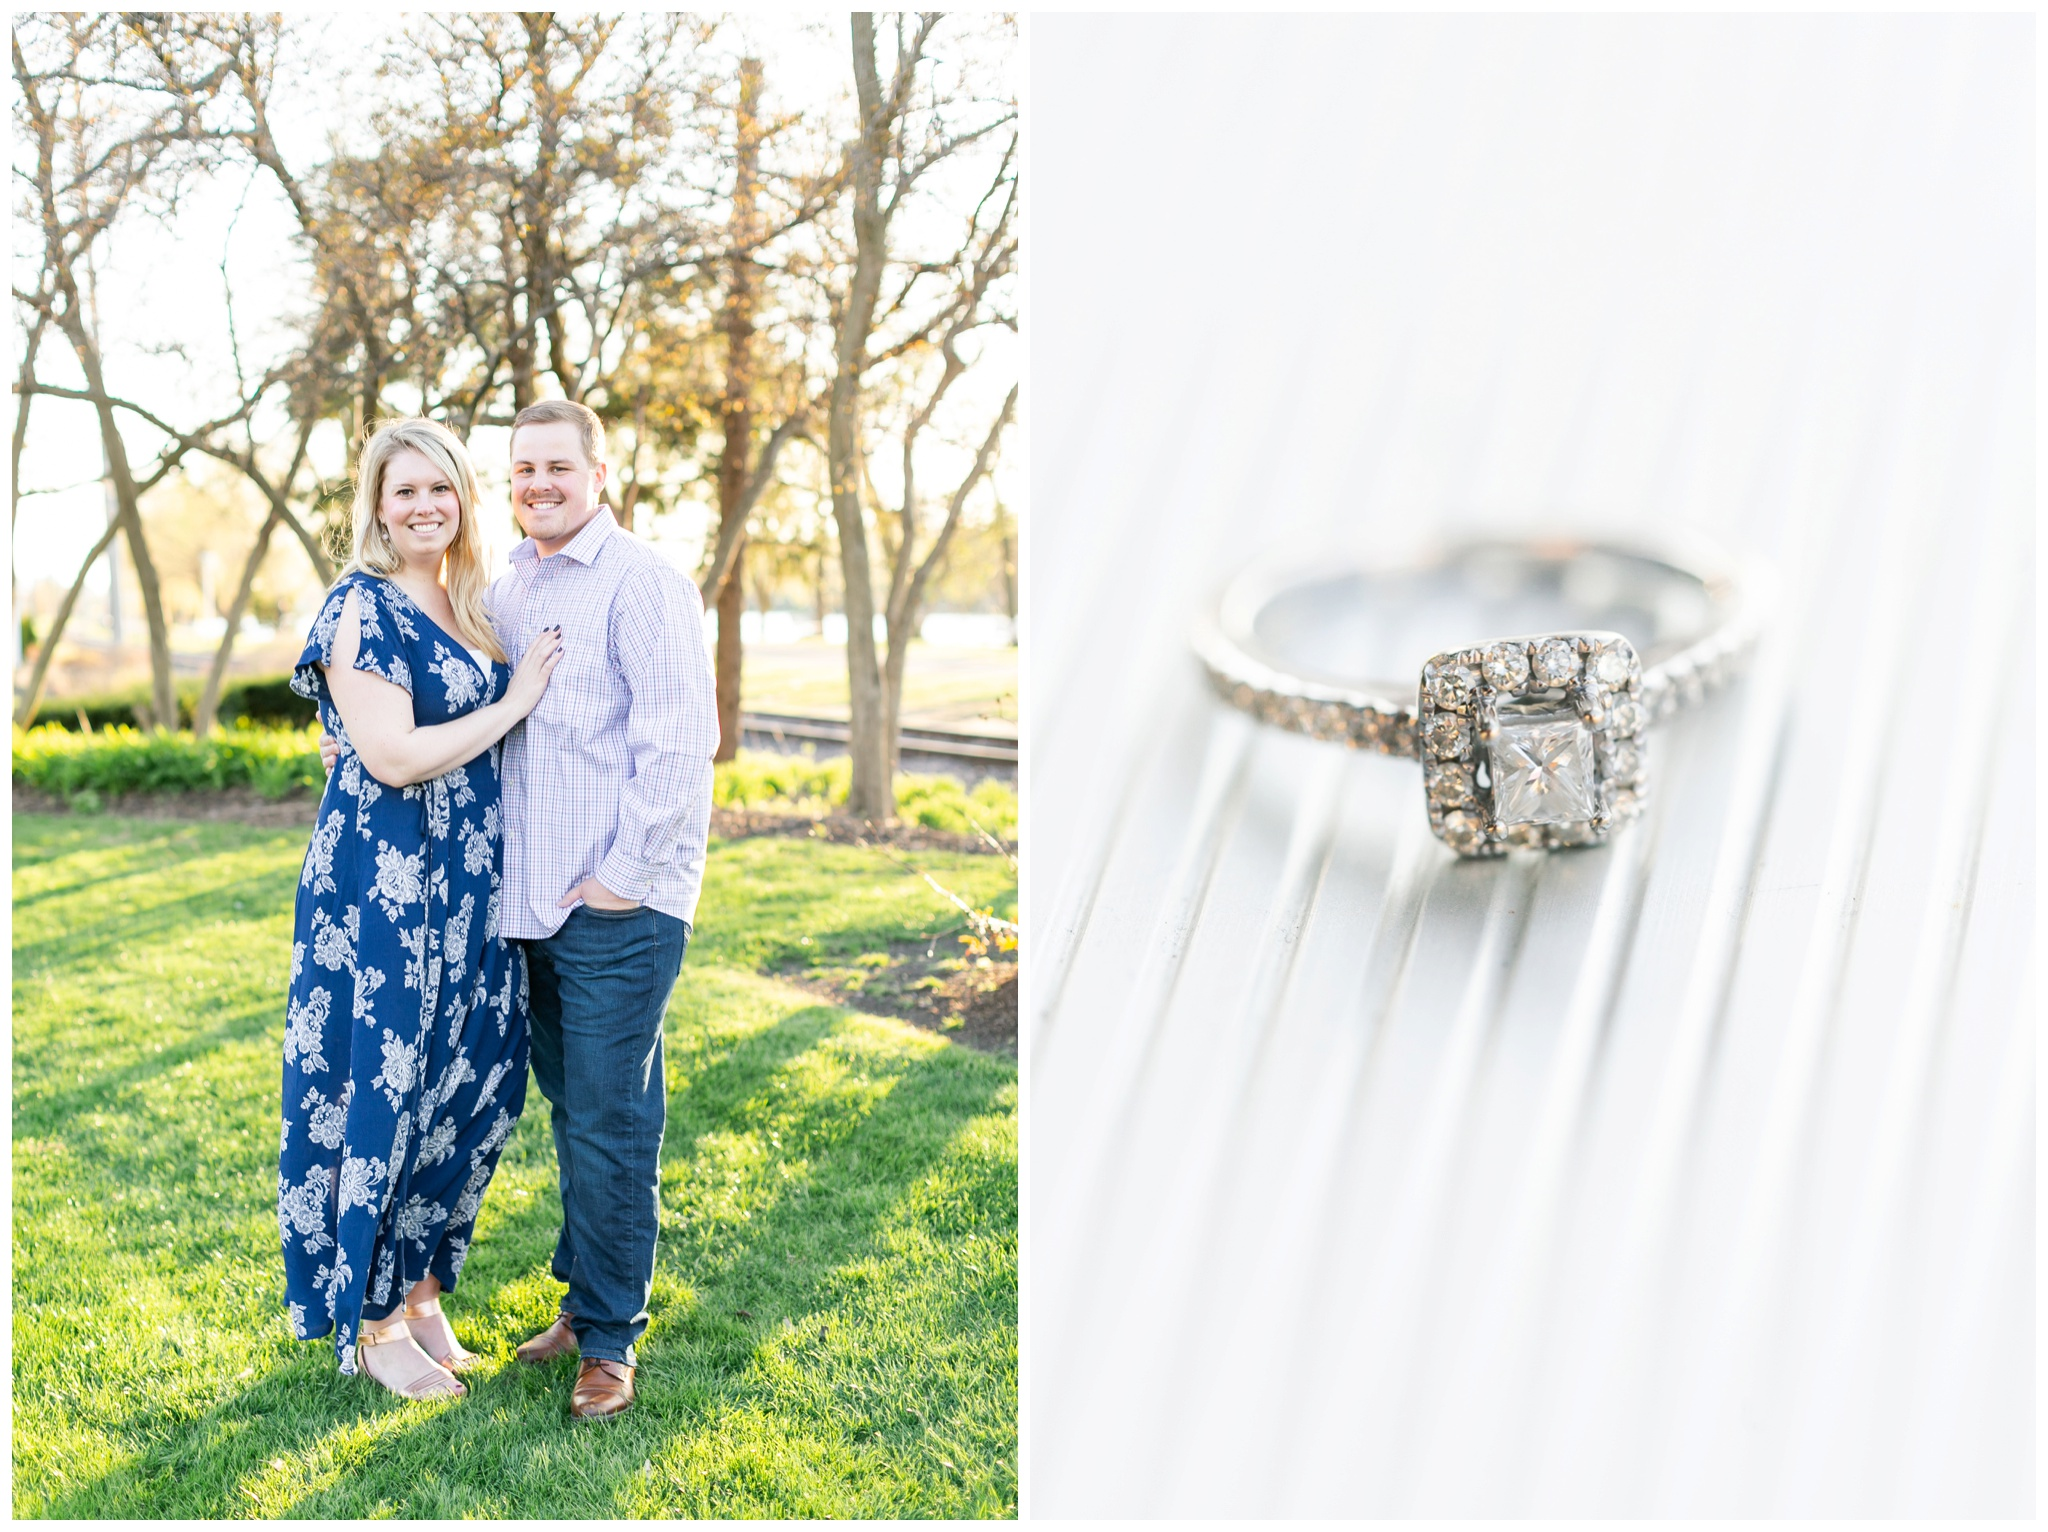 nicholas_conservatory_engagement_session_rockford_illinois_caynay_photo_2990.jpg